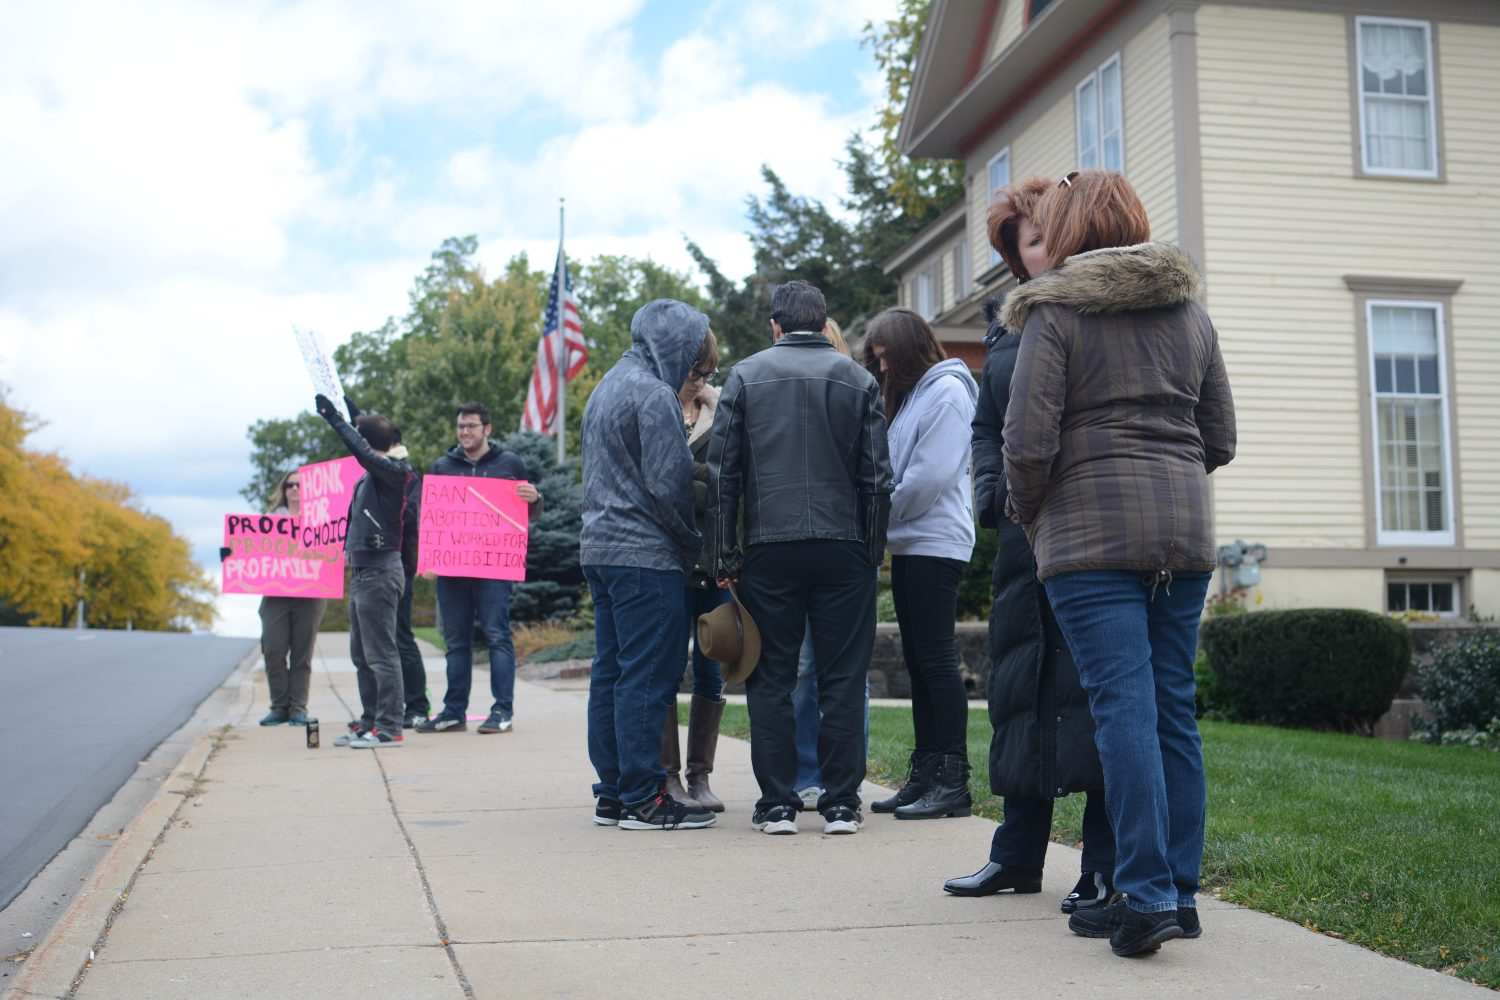 Students gather to pray outside of abortion clinic. Another group gathers to protest. Photo Credit Rachel Evans